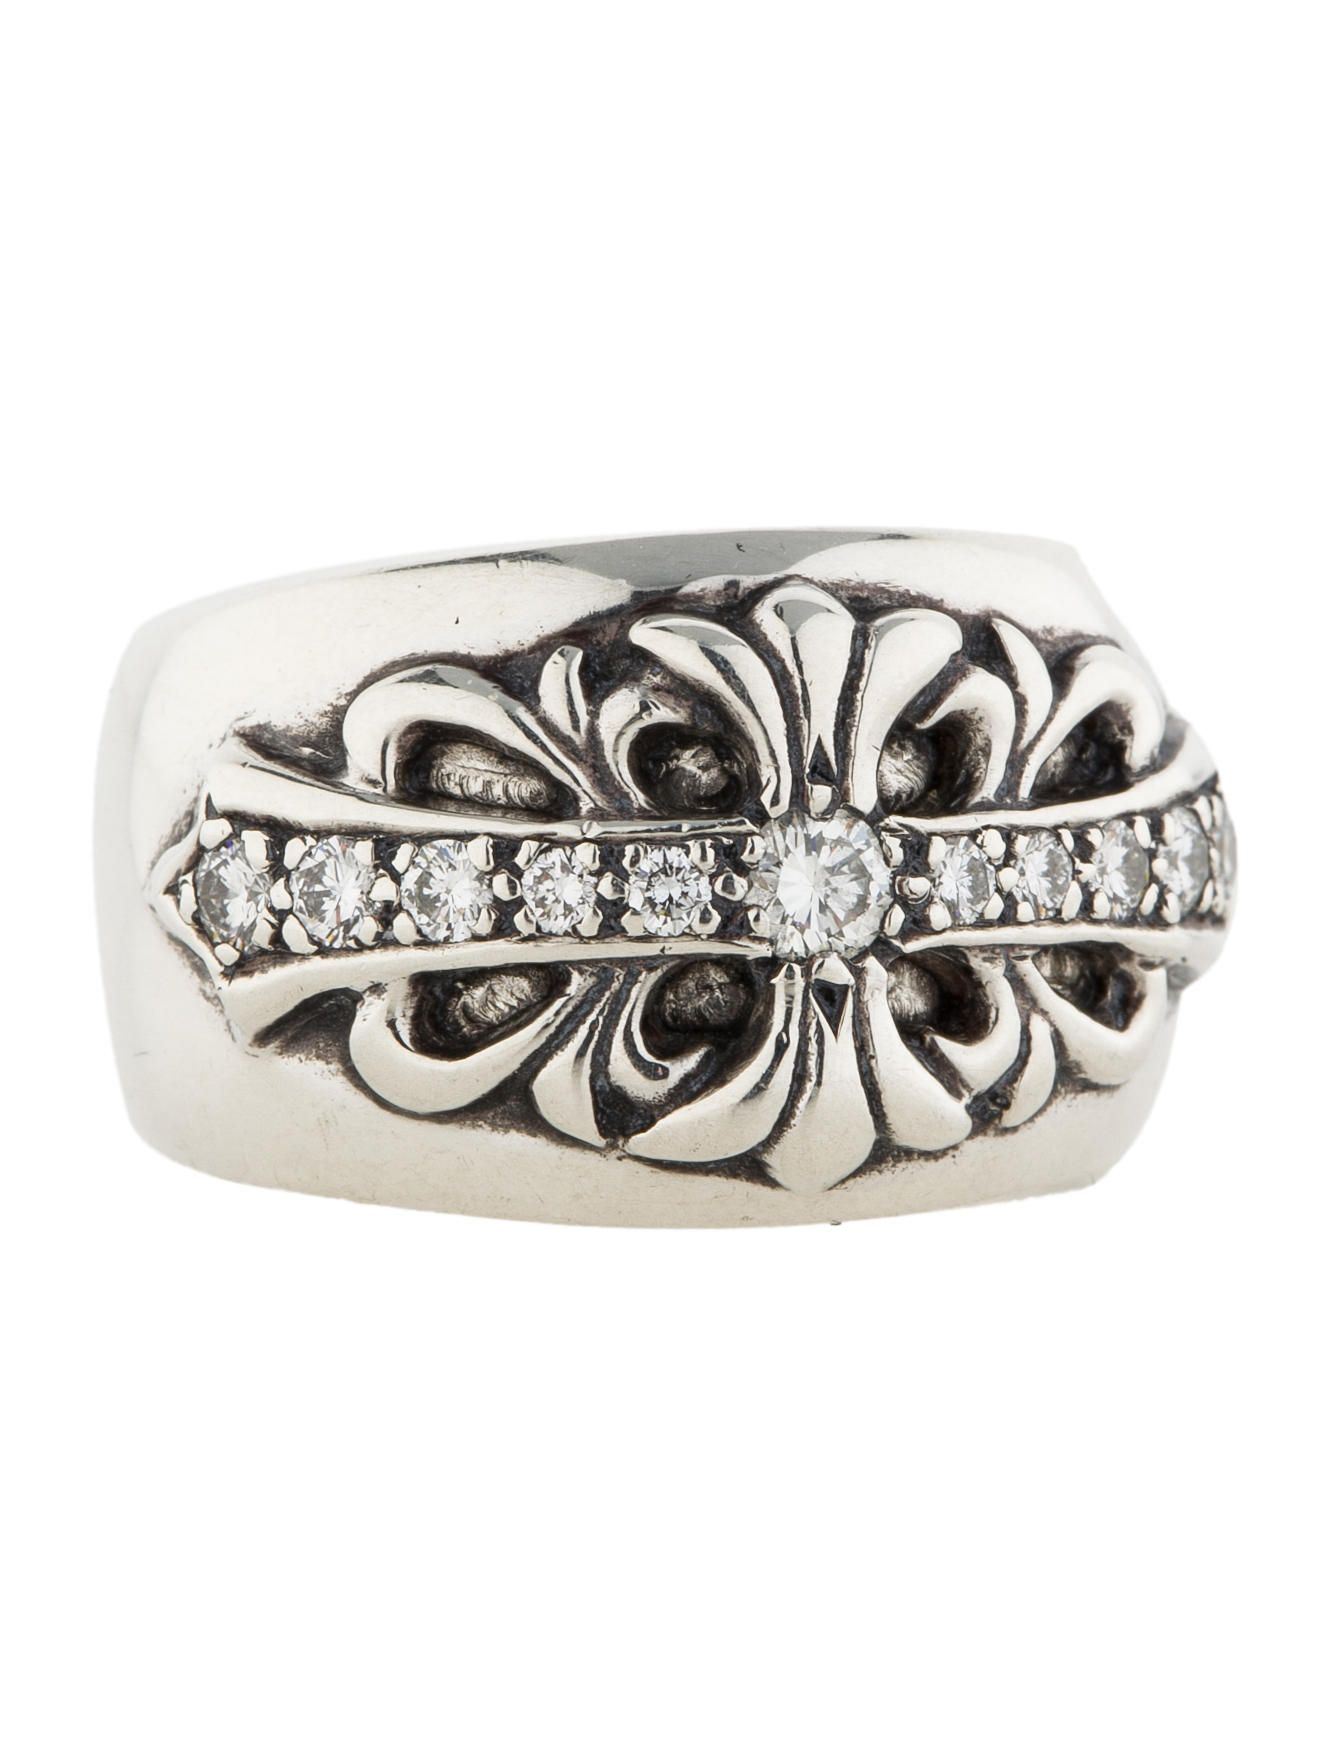 b855eb1cfb2 Sterling silver Chrome Hearts ring with diamond accents. Ring size 9.